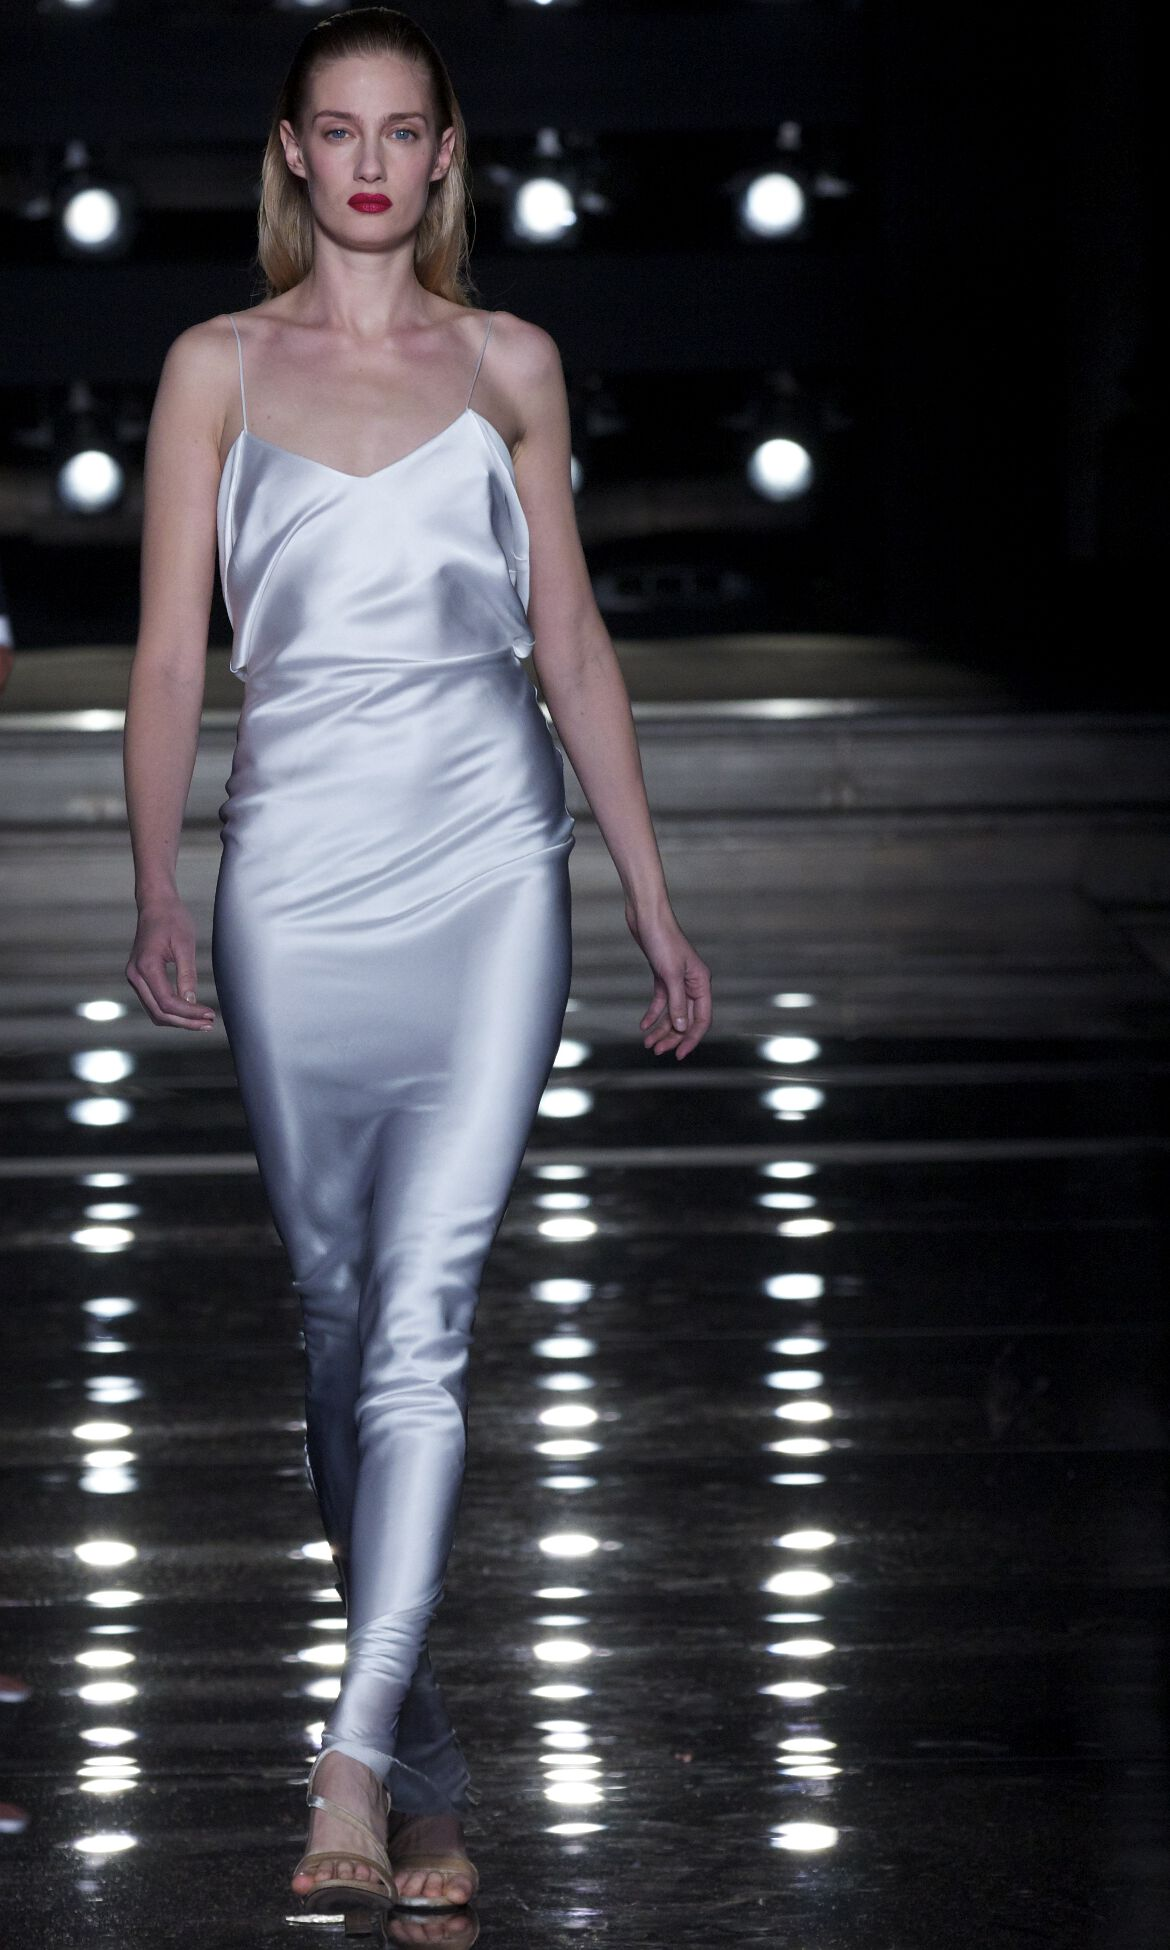 Ermanno Scervino Fashion Model White Dress